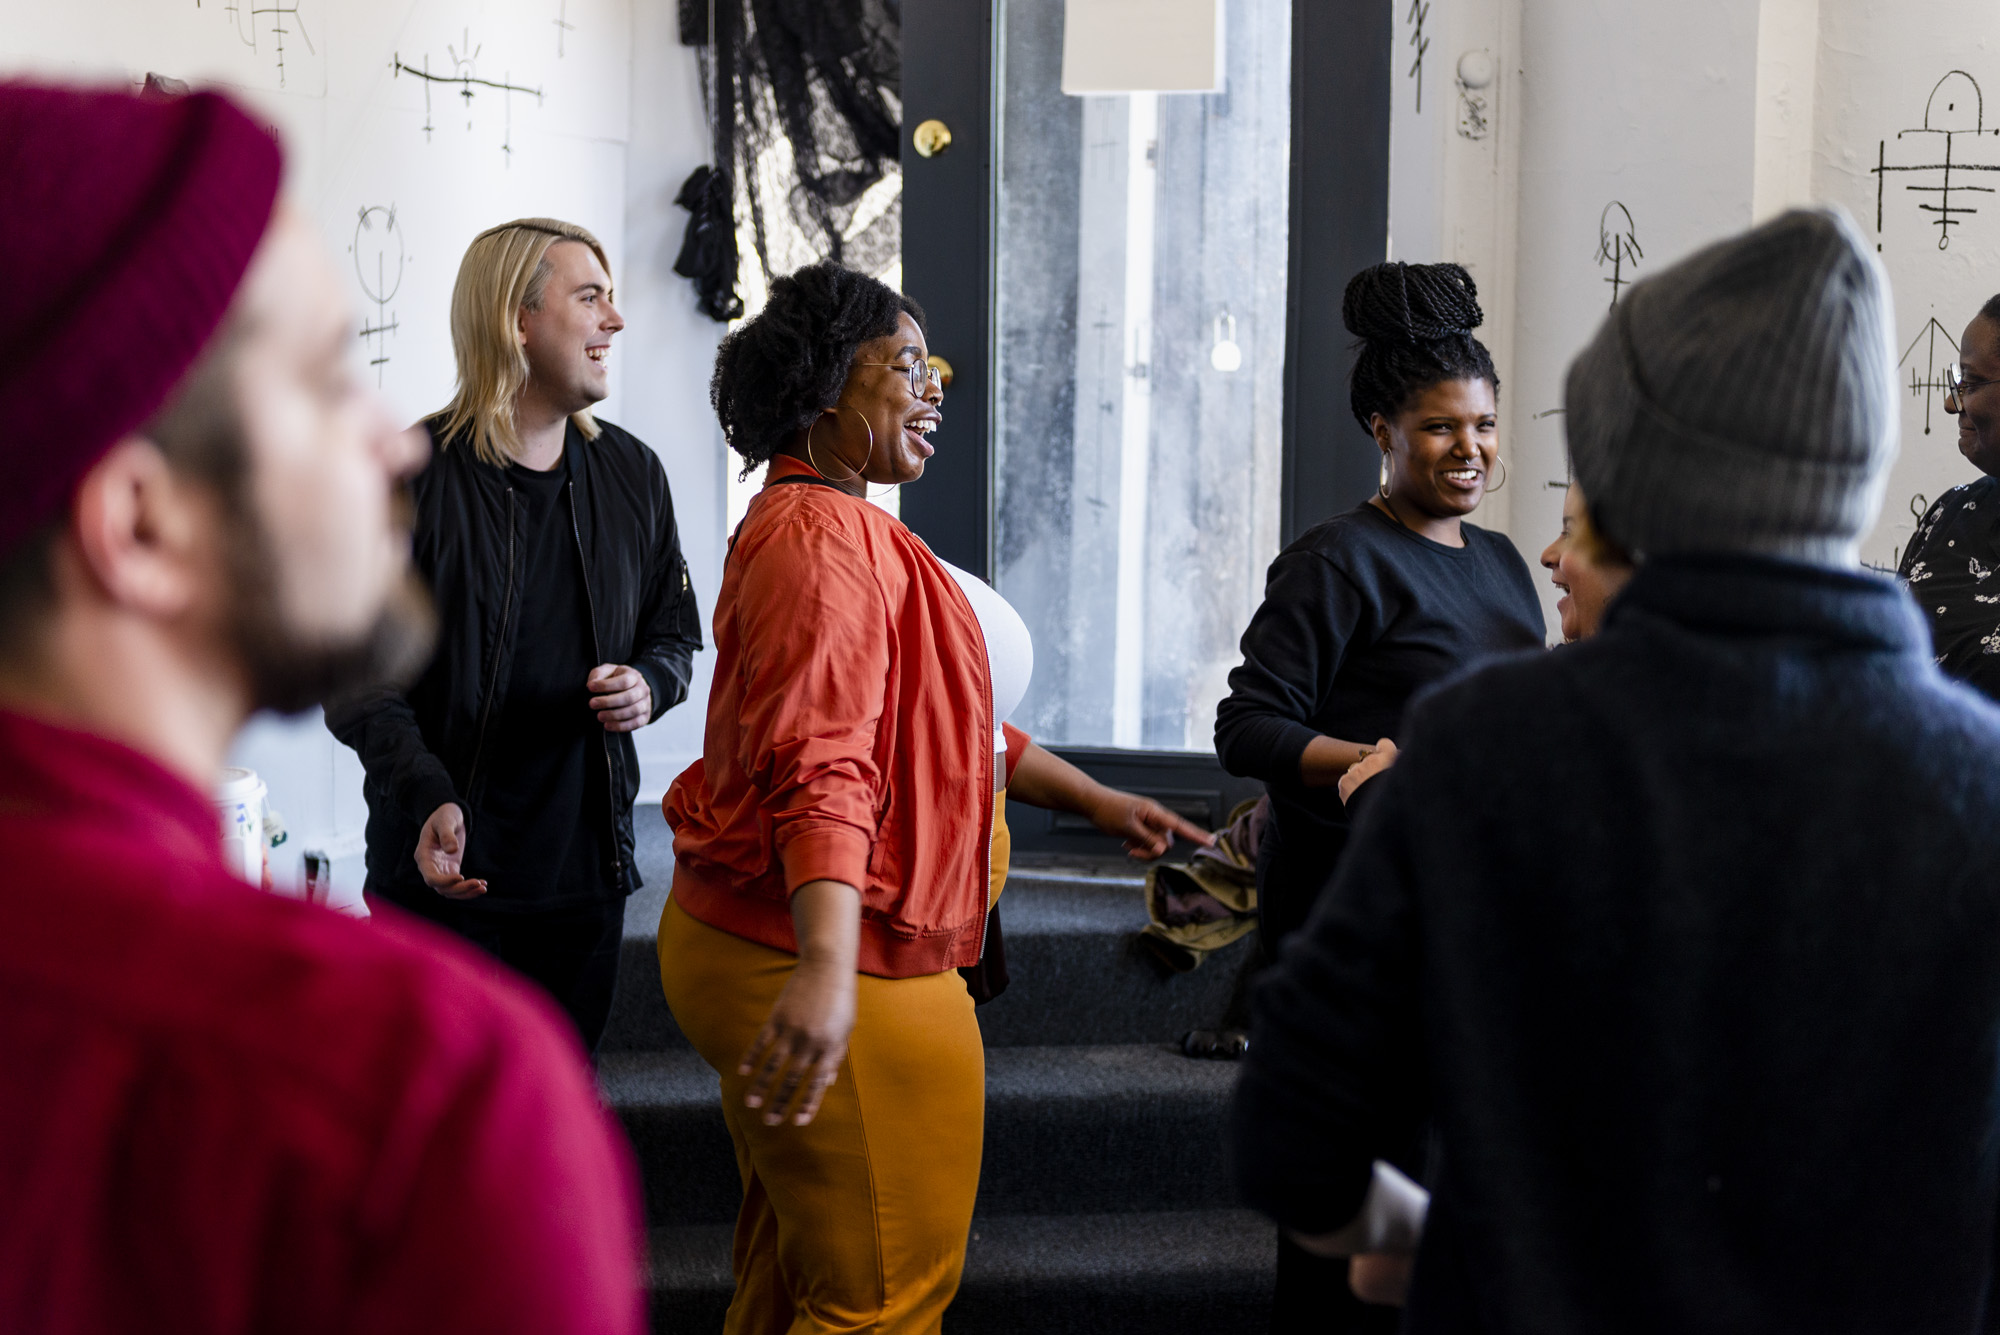 Image: Participants at Root & Rise partaking in the euphoric dance party at Roman Susan. Some are in focus and others are out of focus, but all are dancing and smiling. Peeking out from behind their heads are the black hand painted sigils on the gallery walls. Photo by Ryan Edmund.